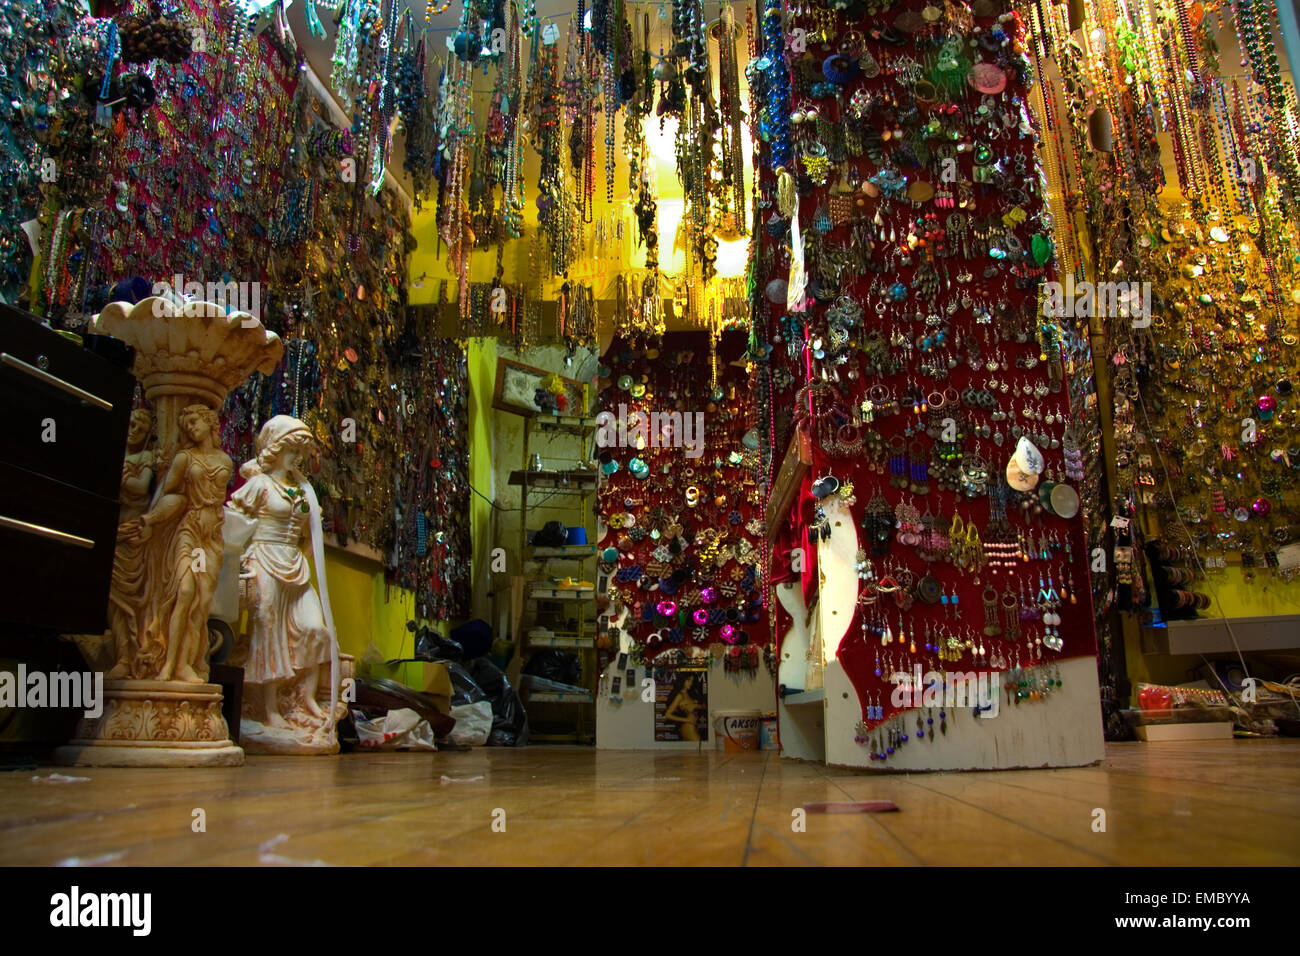 Shop full of costume jewelry of Istanbul Turkey. A very colorful assortment of jewelry & Shop full of costume jewelry of Istanbul Turkey. A very colorful ...